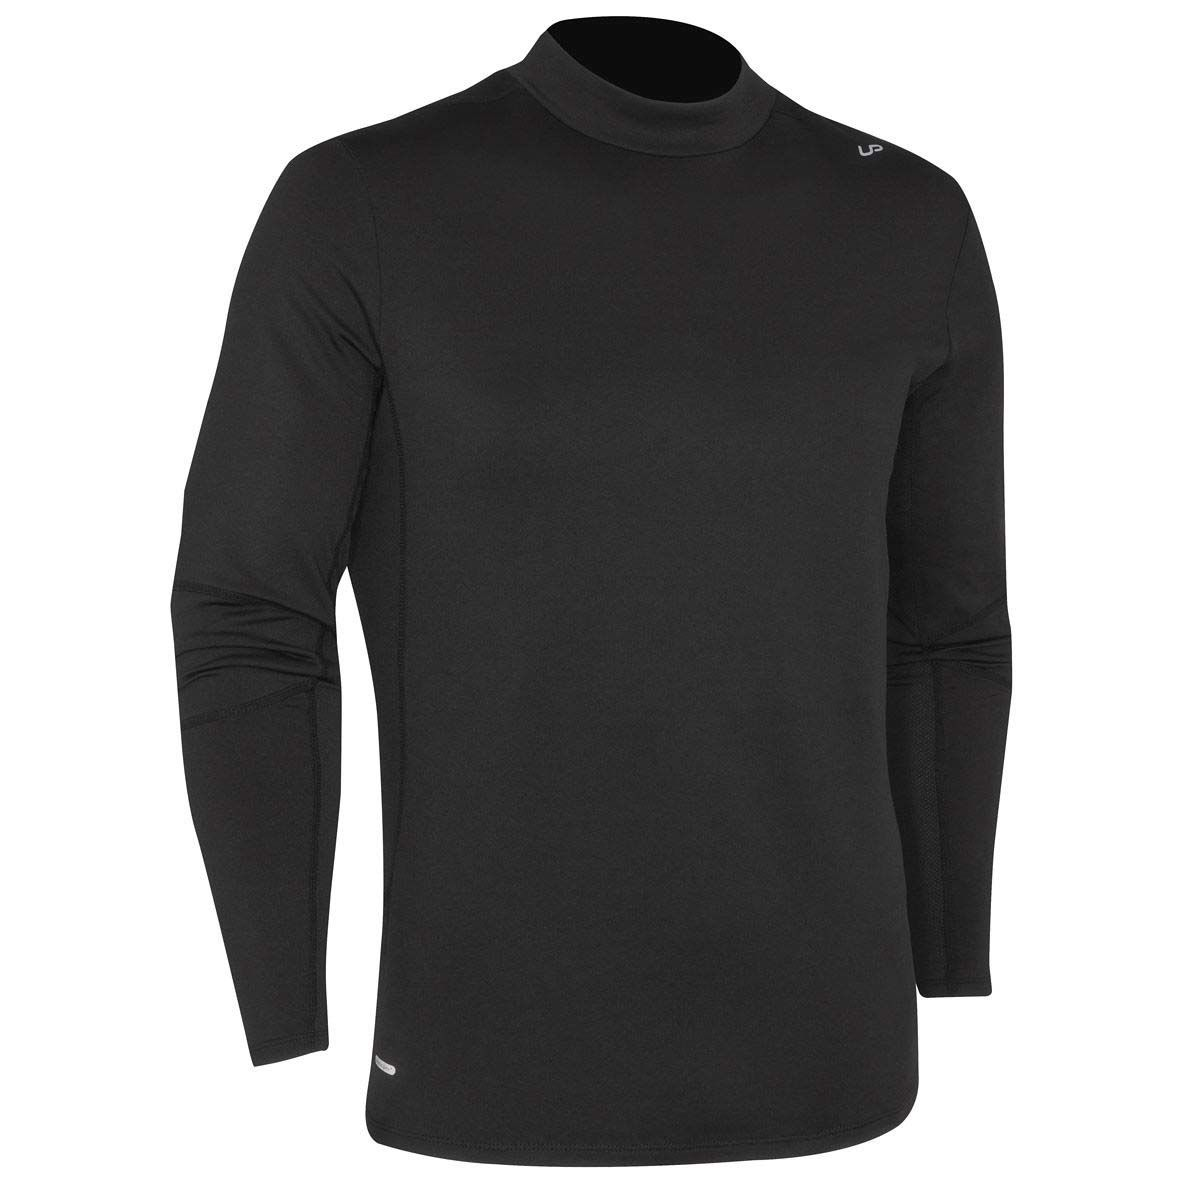 UniPro Cold Gear Mens Crew Neck Long Sleeve Shirt